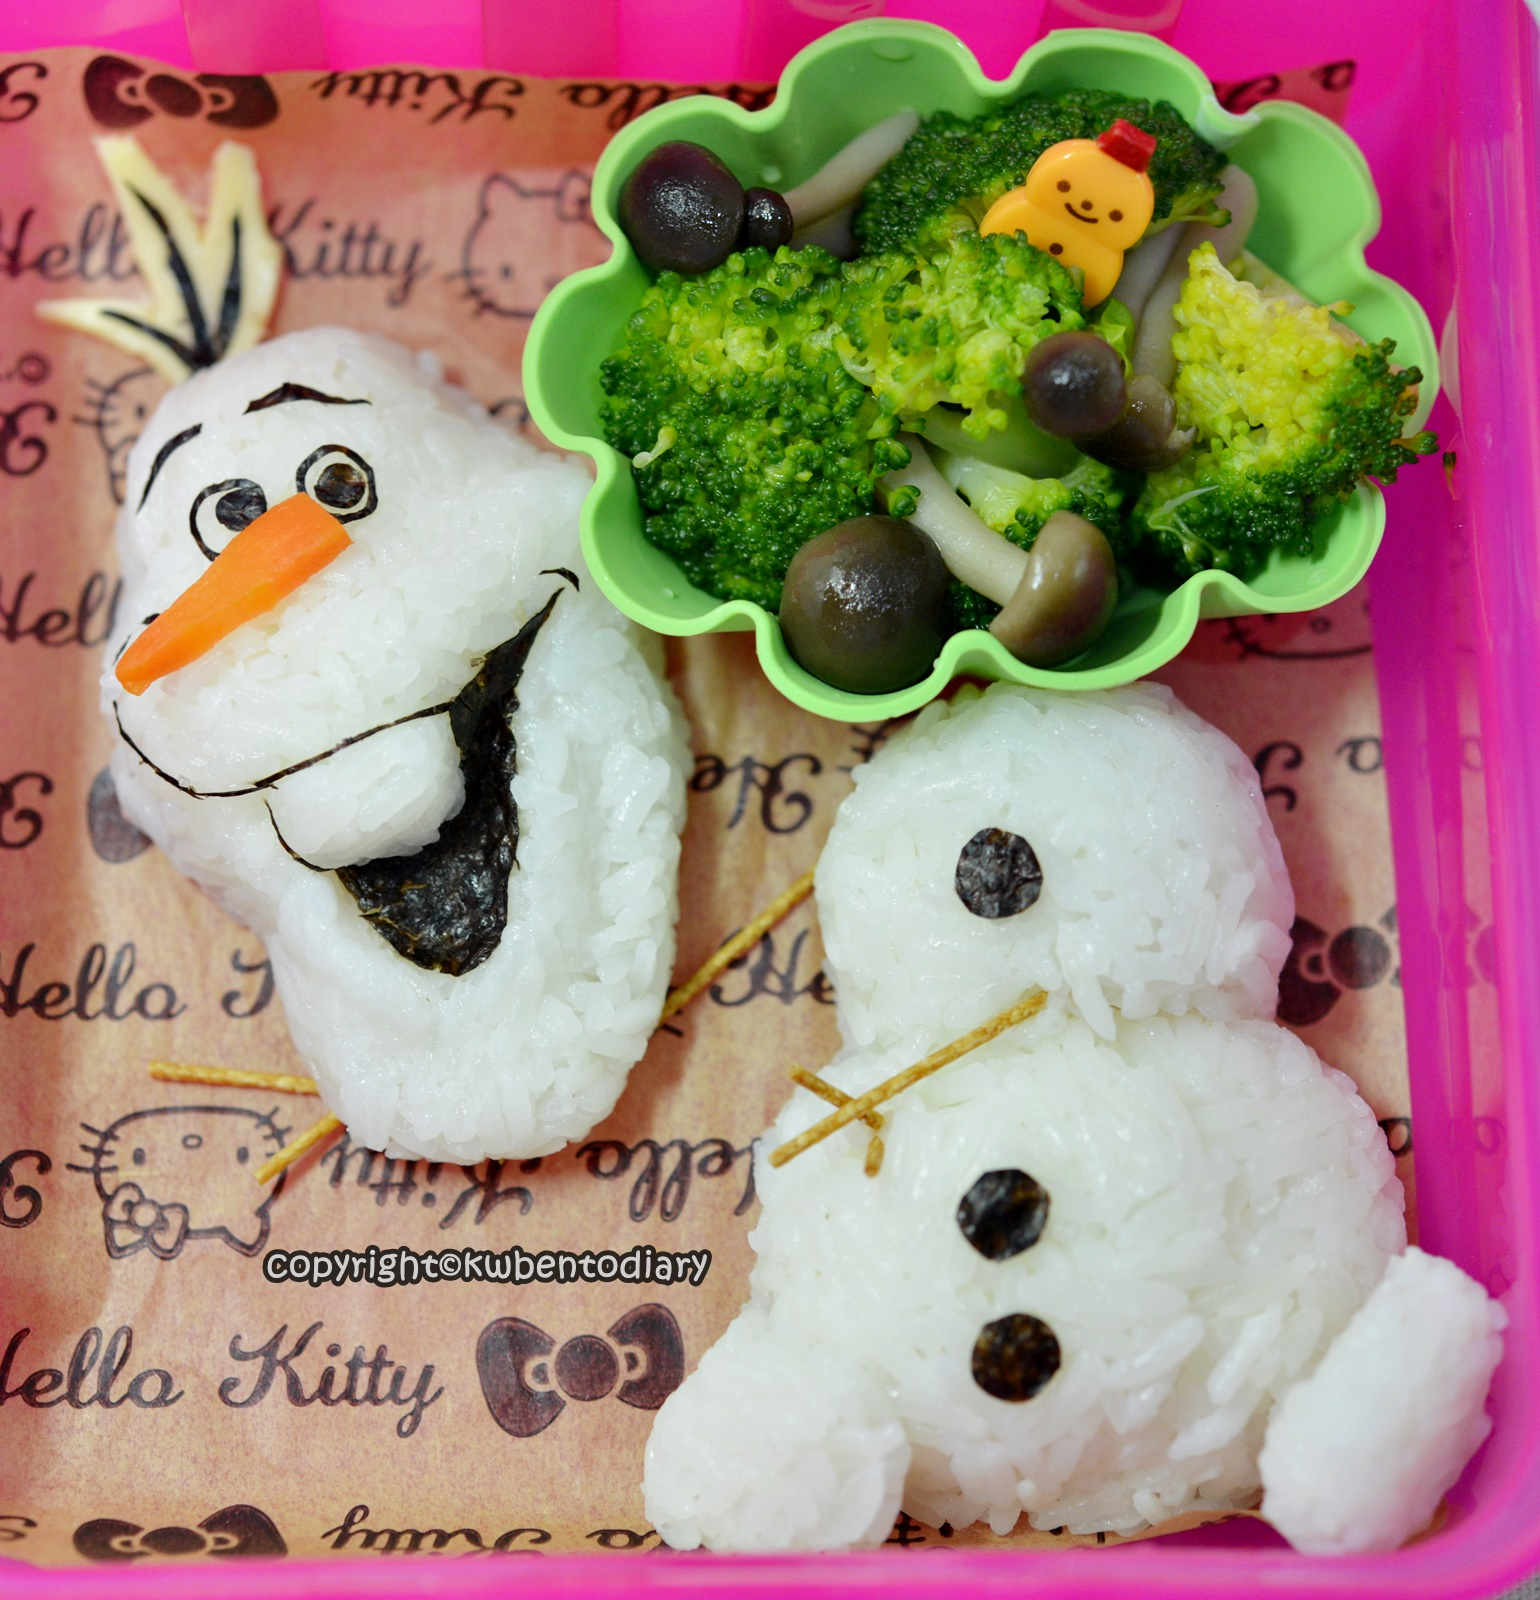 olaf bento lunch box olaf bento japan bento food art pinterest olaf 35 945 bento salads and. Black Bedroom Furniture Sets. Home Design Ideas